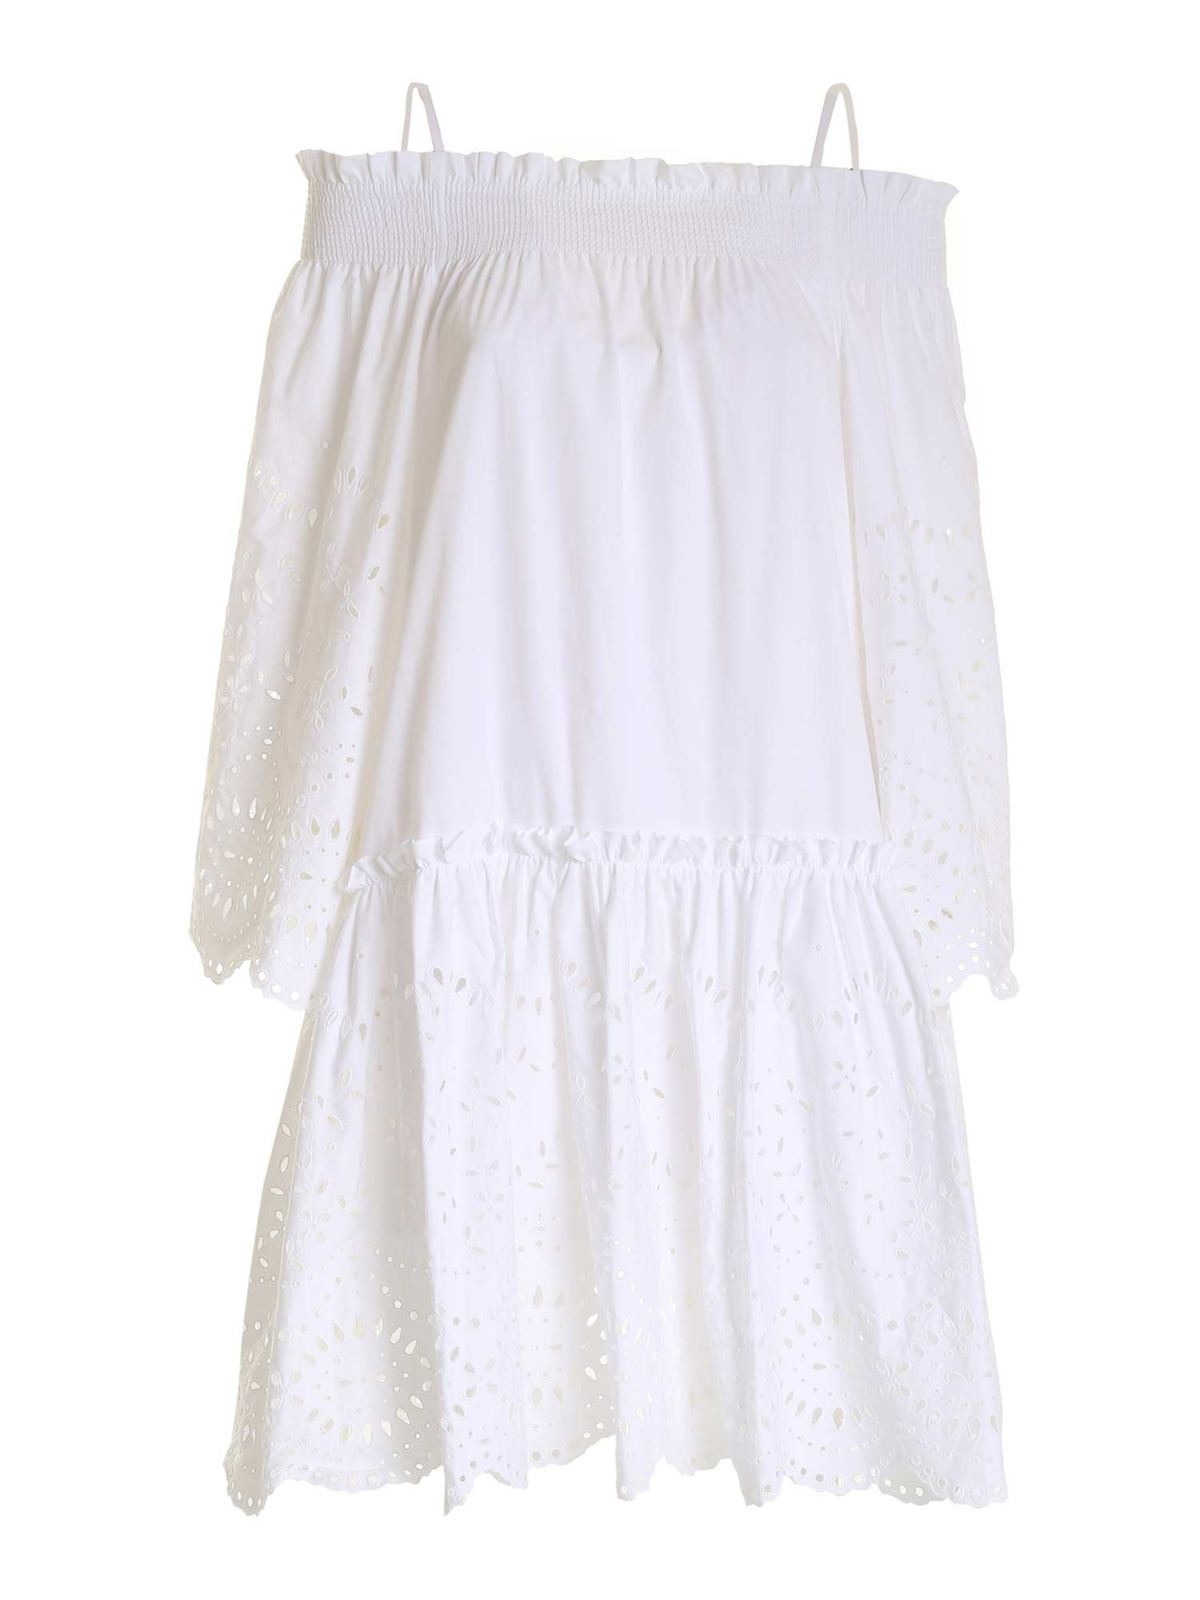 P.A.R.O.S.H. OFF-SHOULDER BRODERIE ANGLAISE DRESS